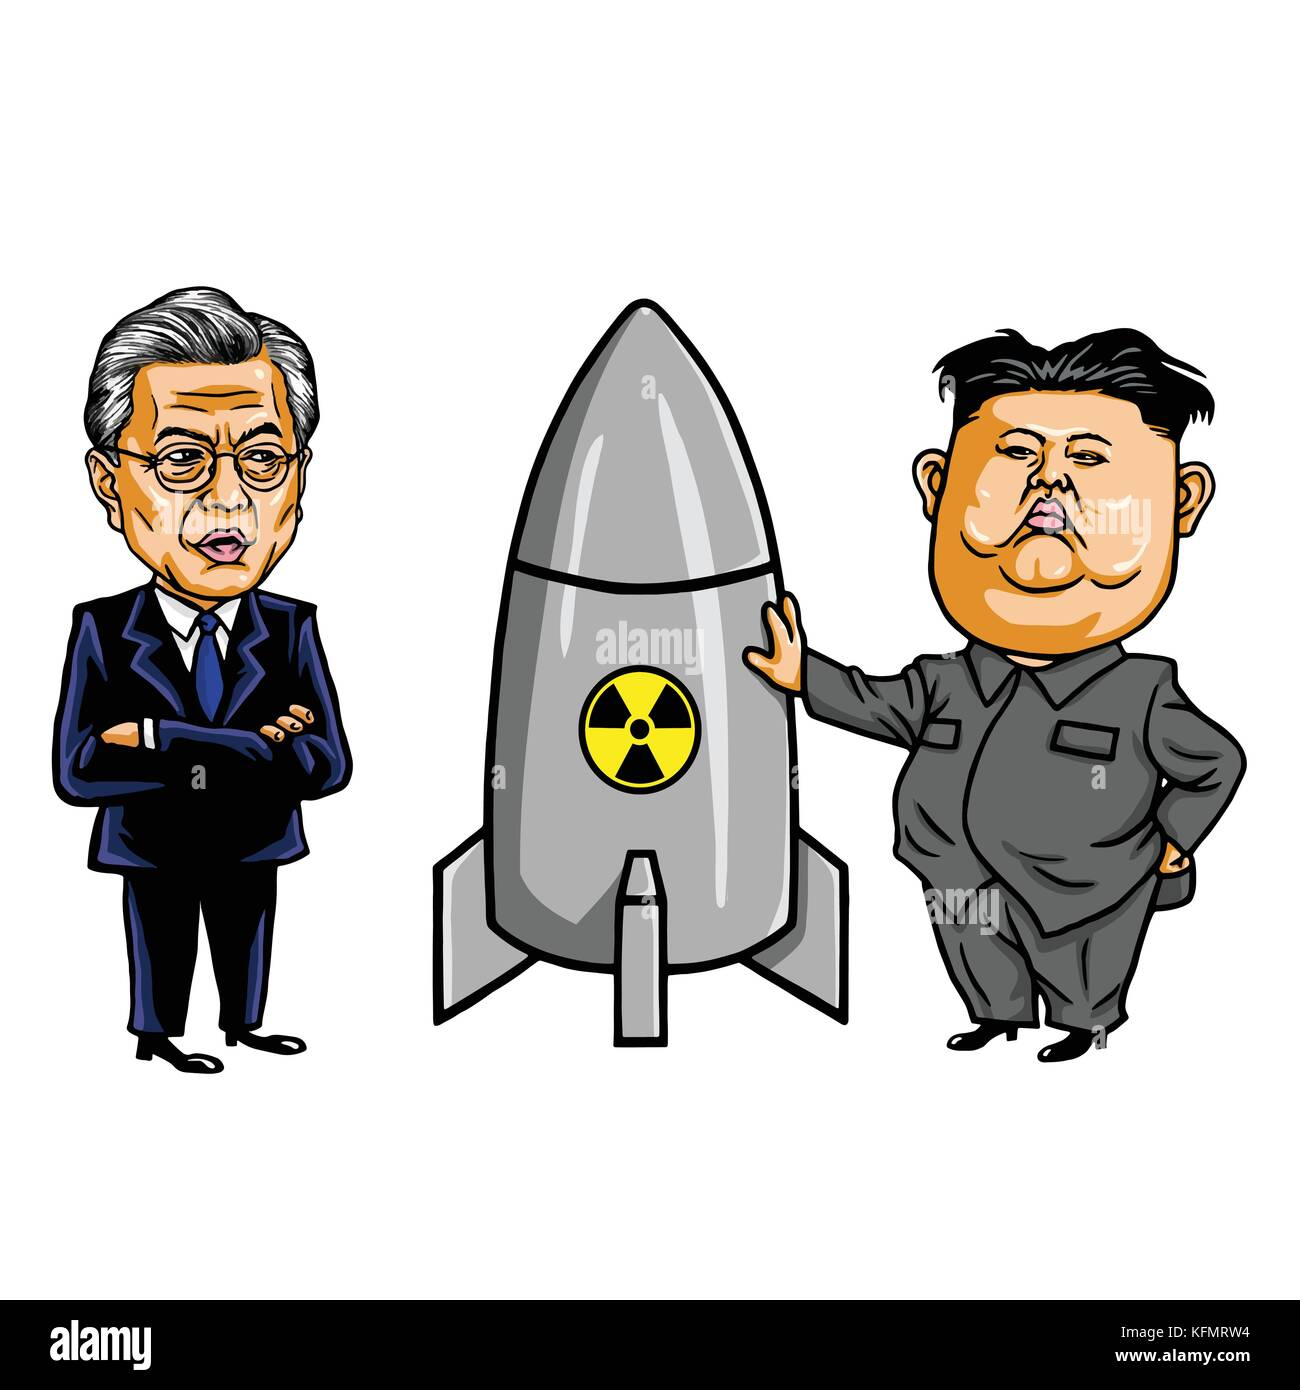 Kim Jong-un VS Moon Jae-in. Cartoon Caricature Vector Illustration. October 31, 2017 - Stock Vector